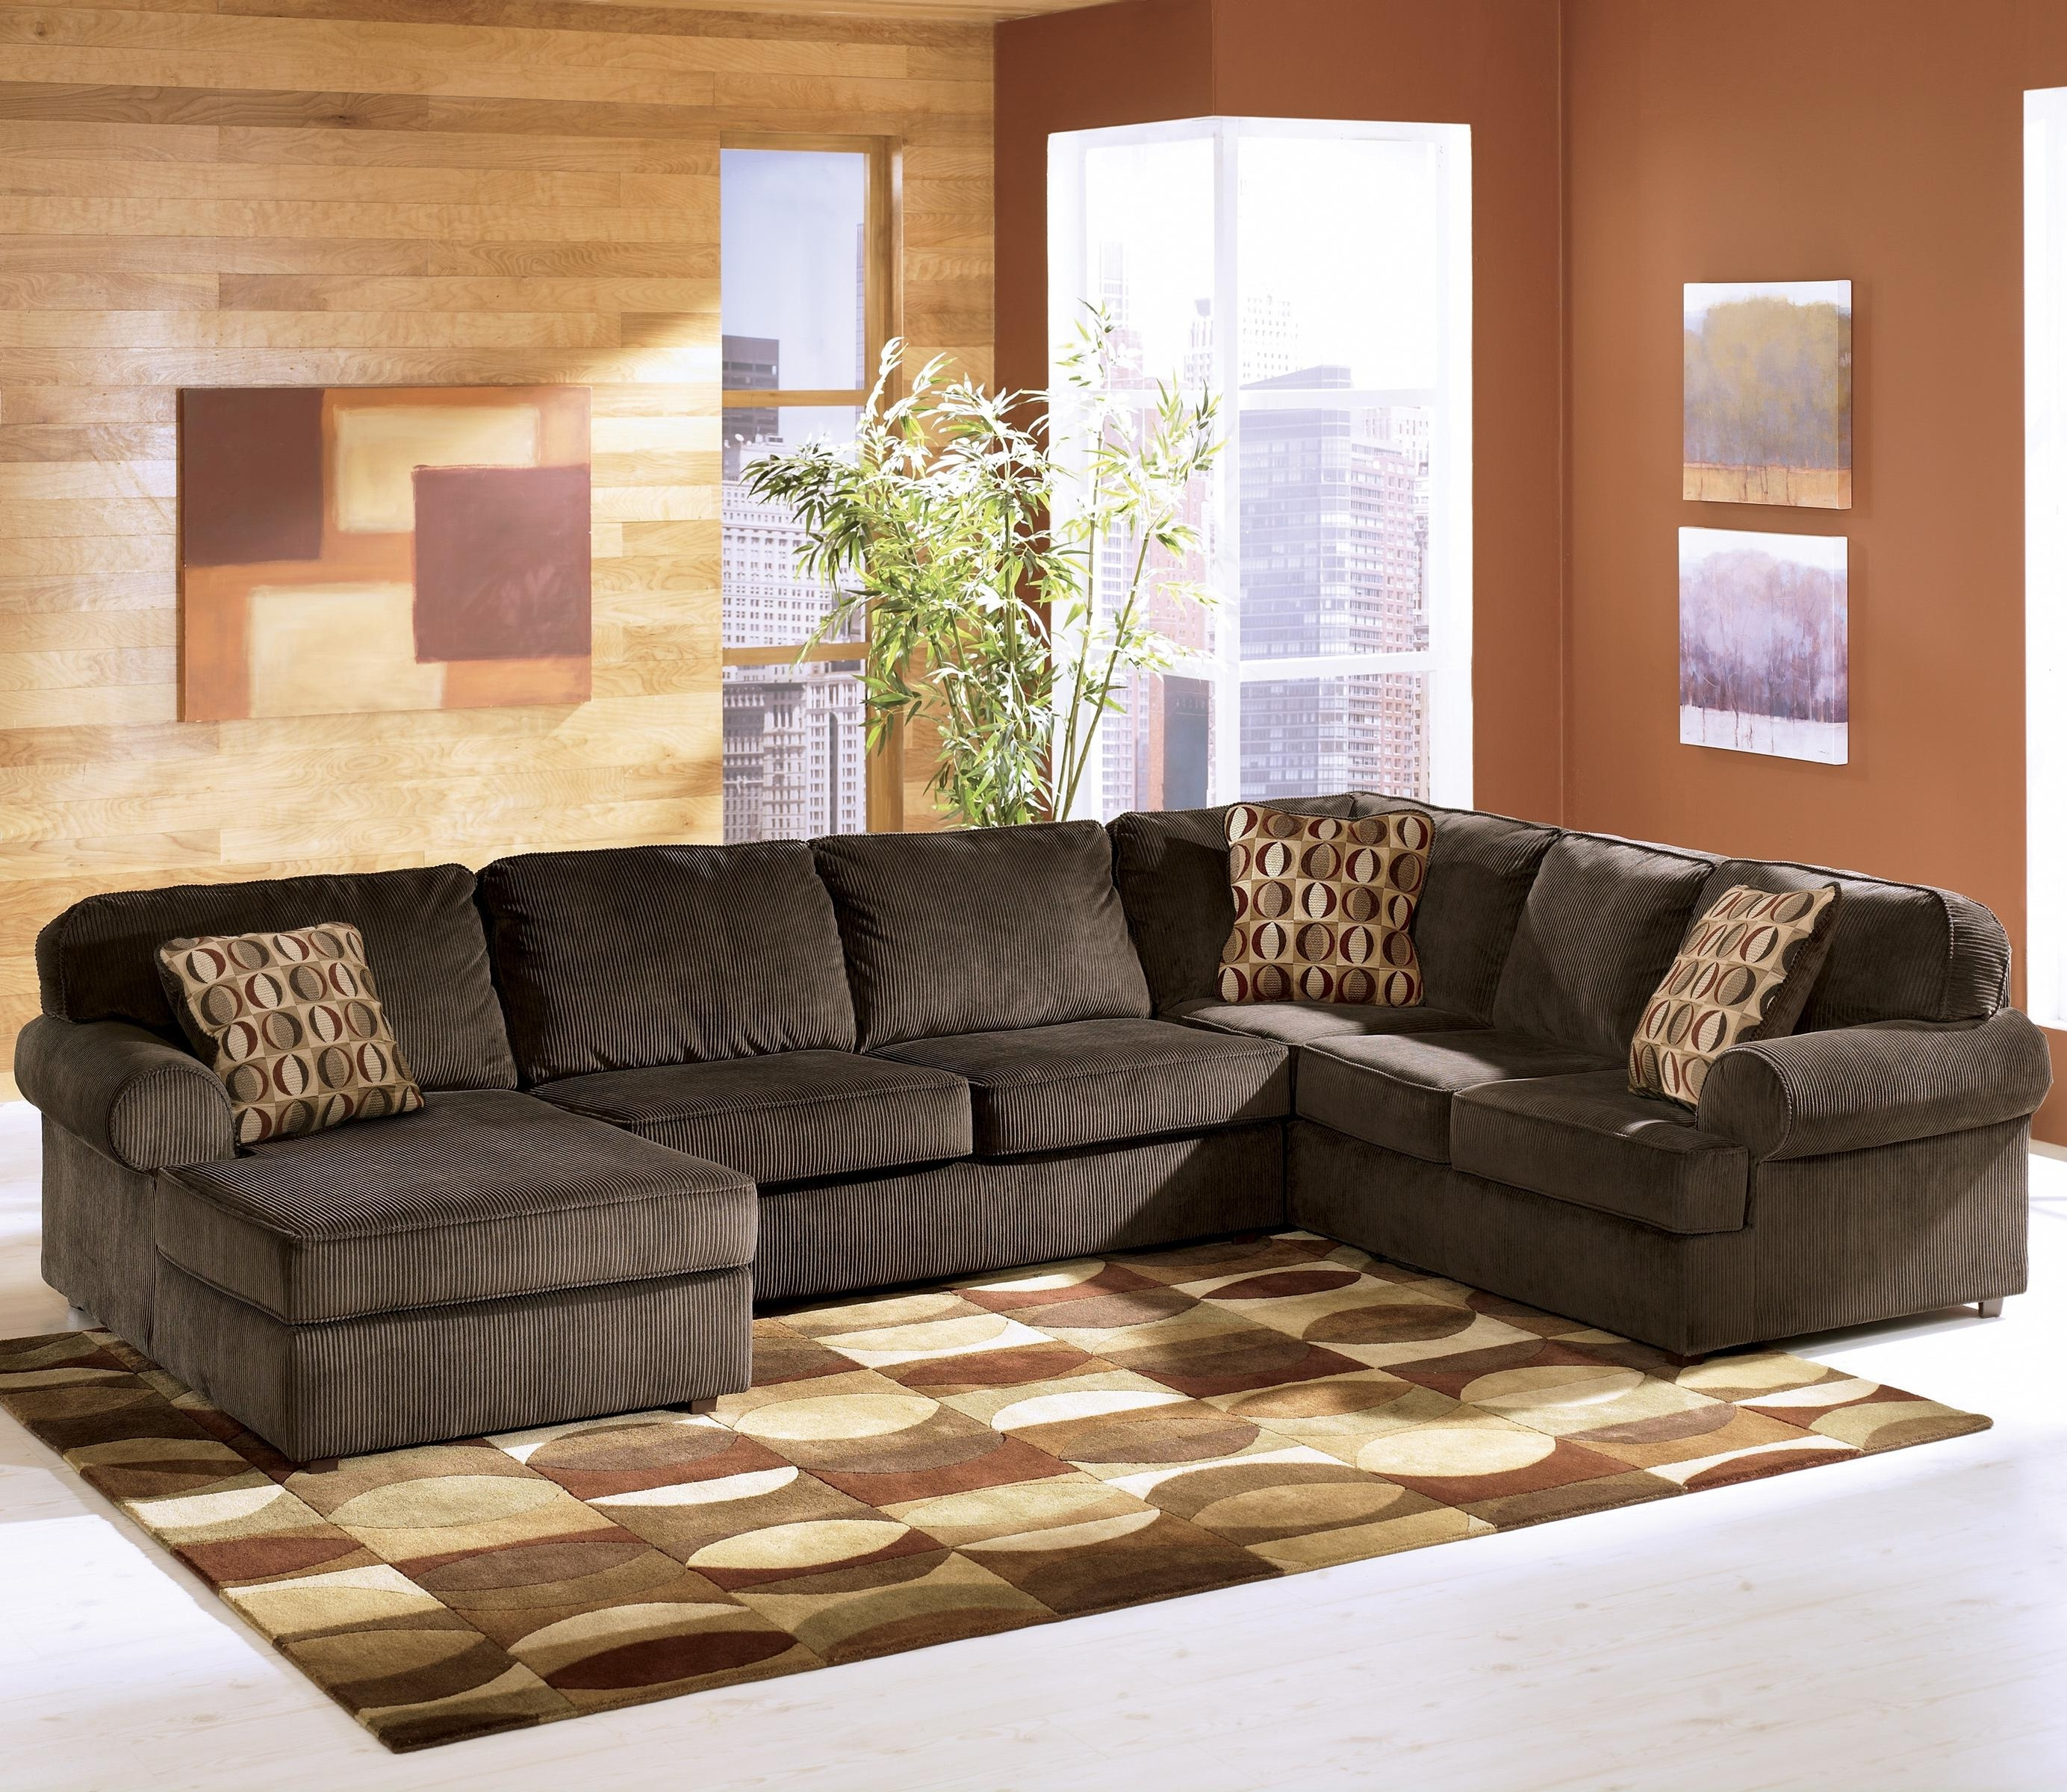 Widely Used Vista – Chocolate 3 Piece Sectional With Right Chaiseashley In Ashley Furniture Sectionals With Chaise (View 15 of 15)